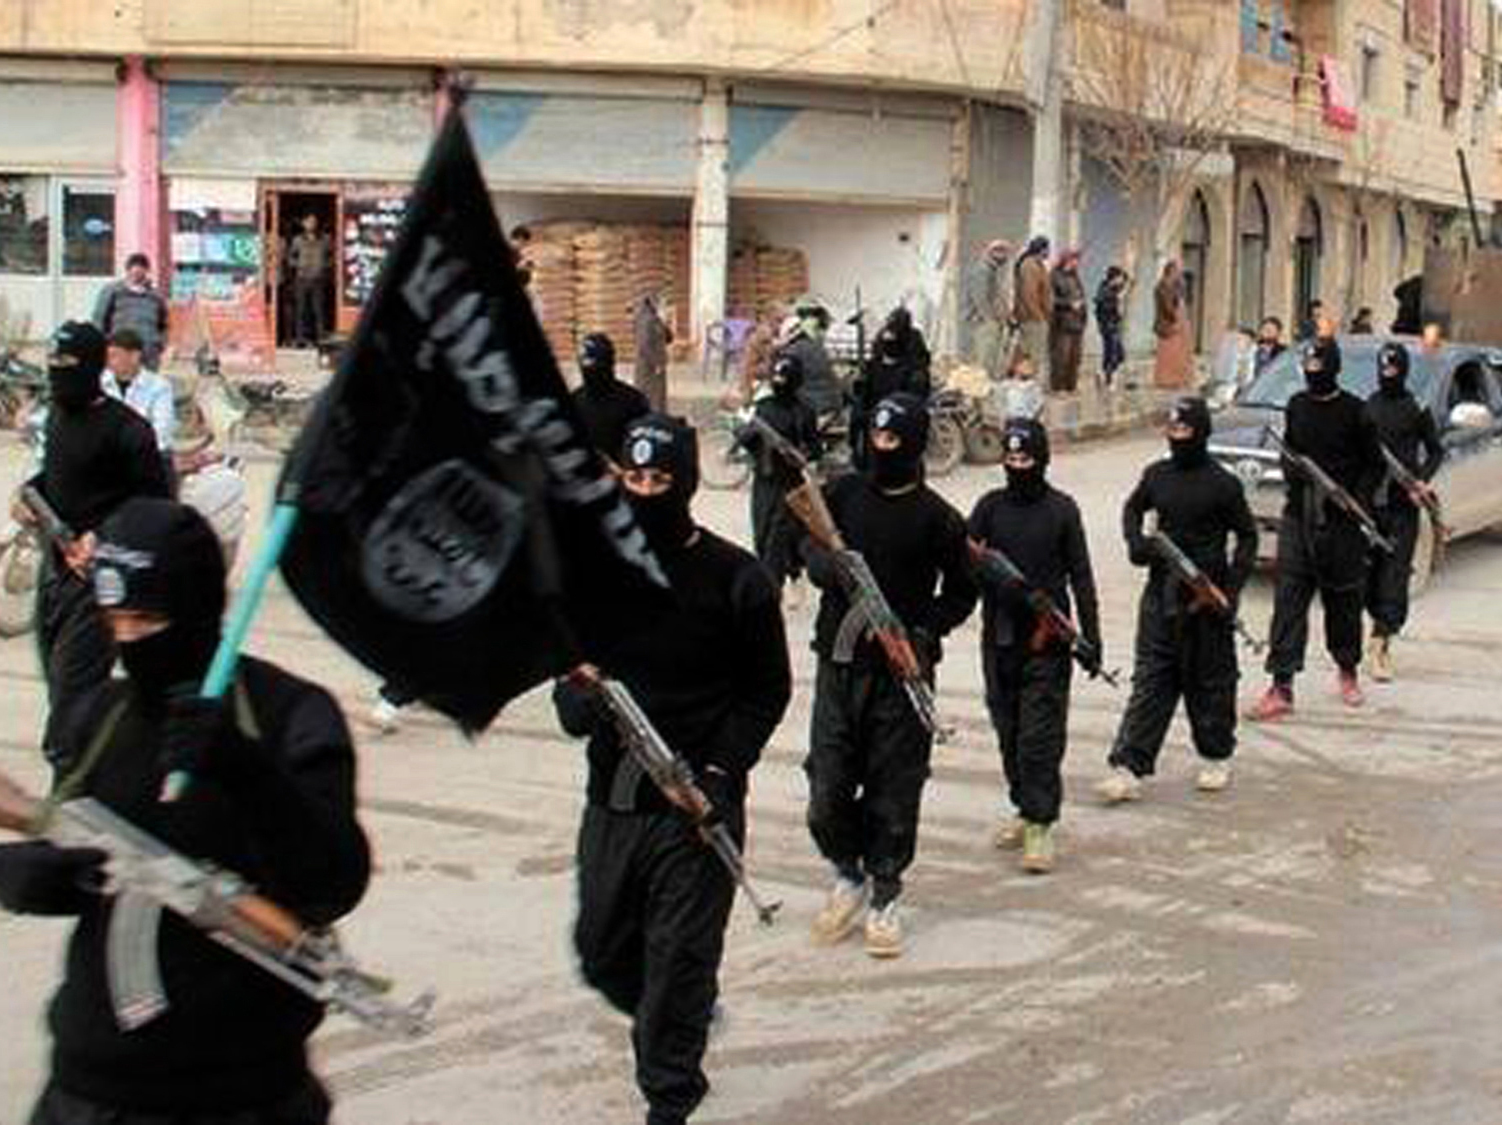 The Psychology Of Modern Terrorism: What Drives Radicalization At Home